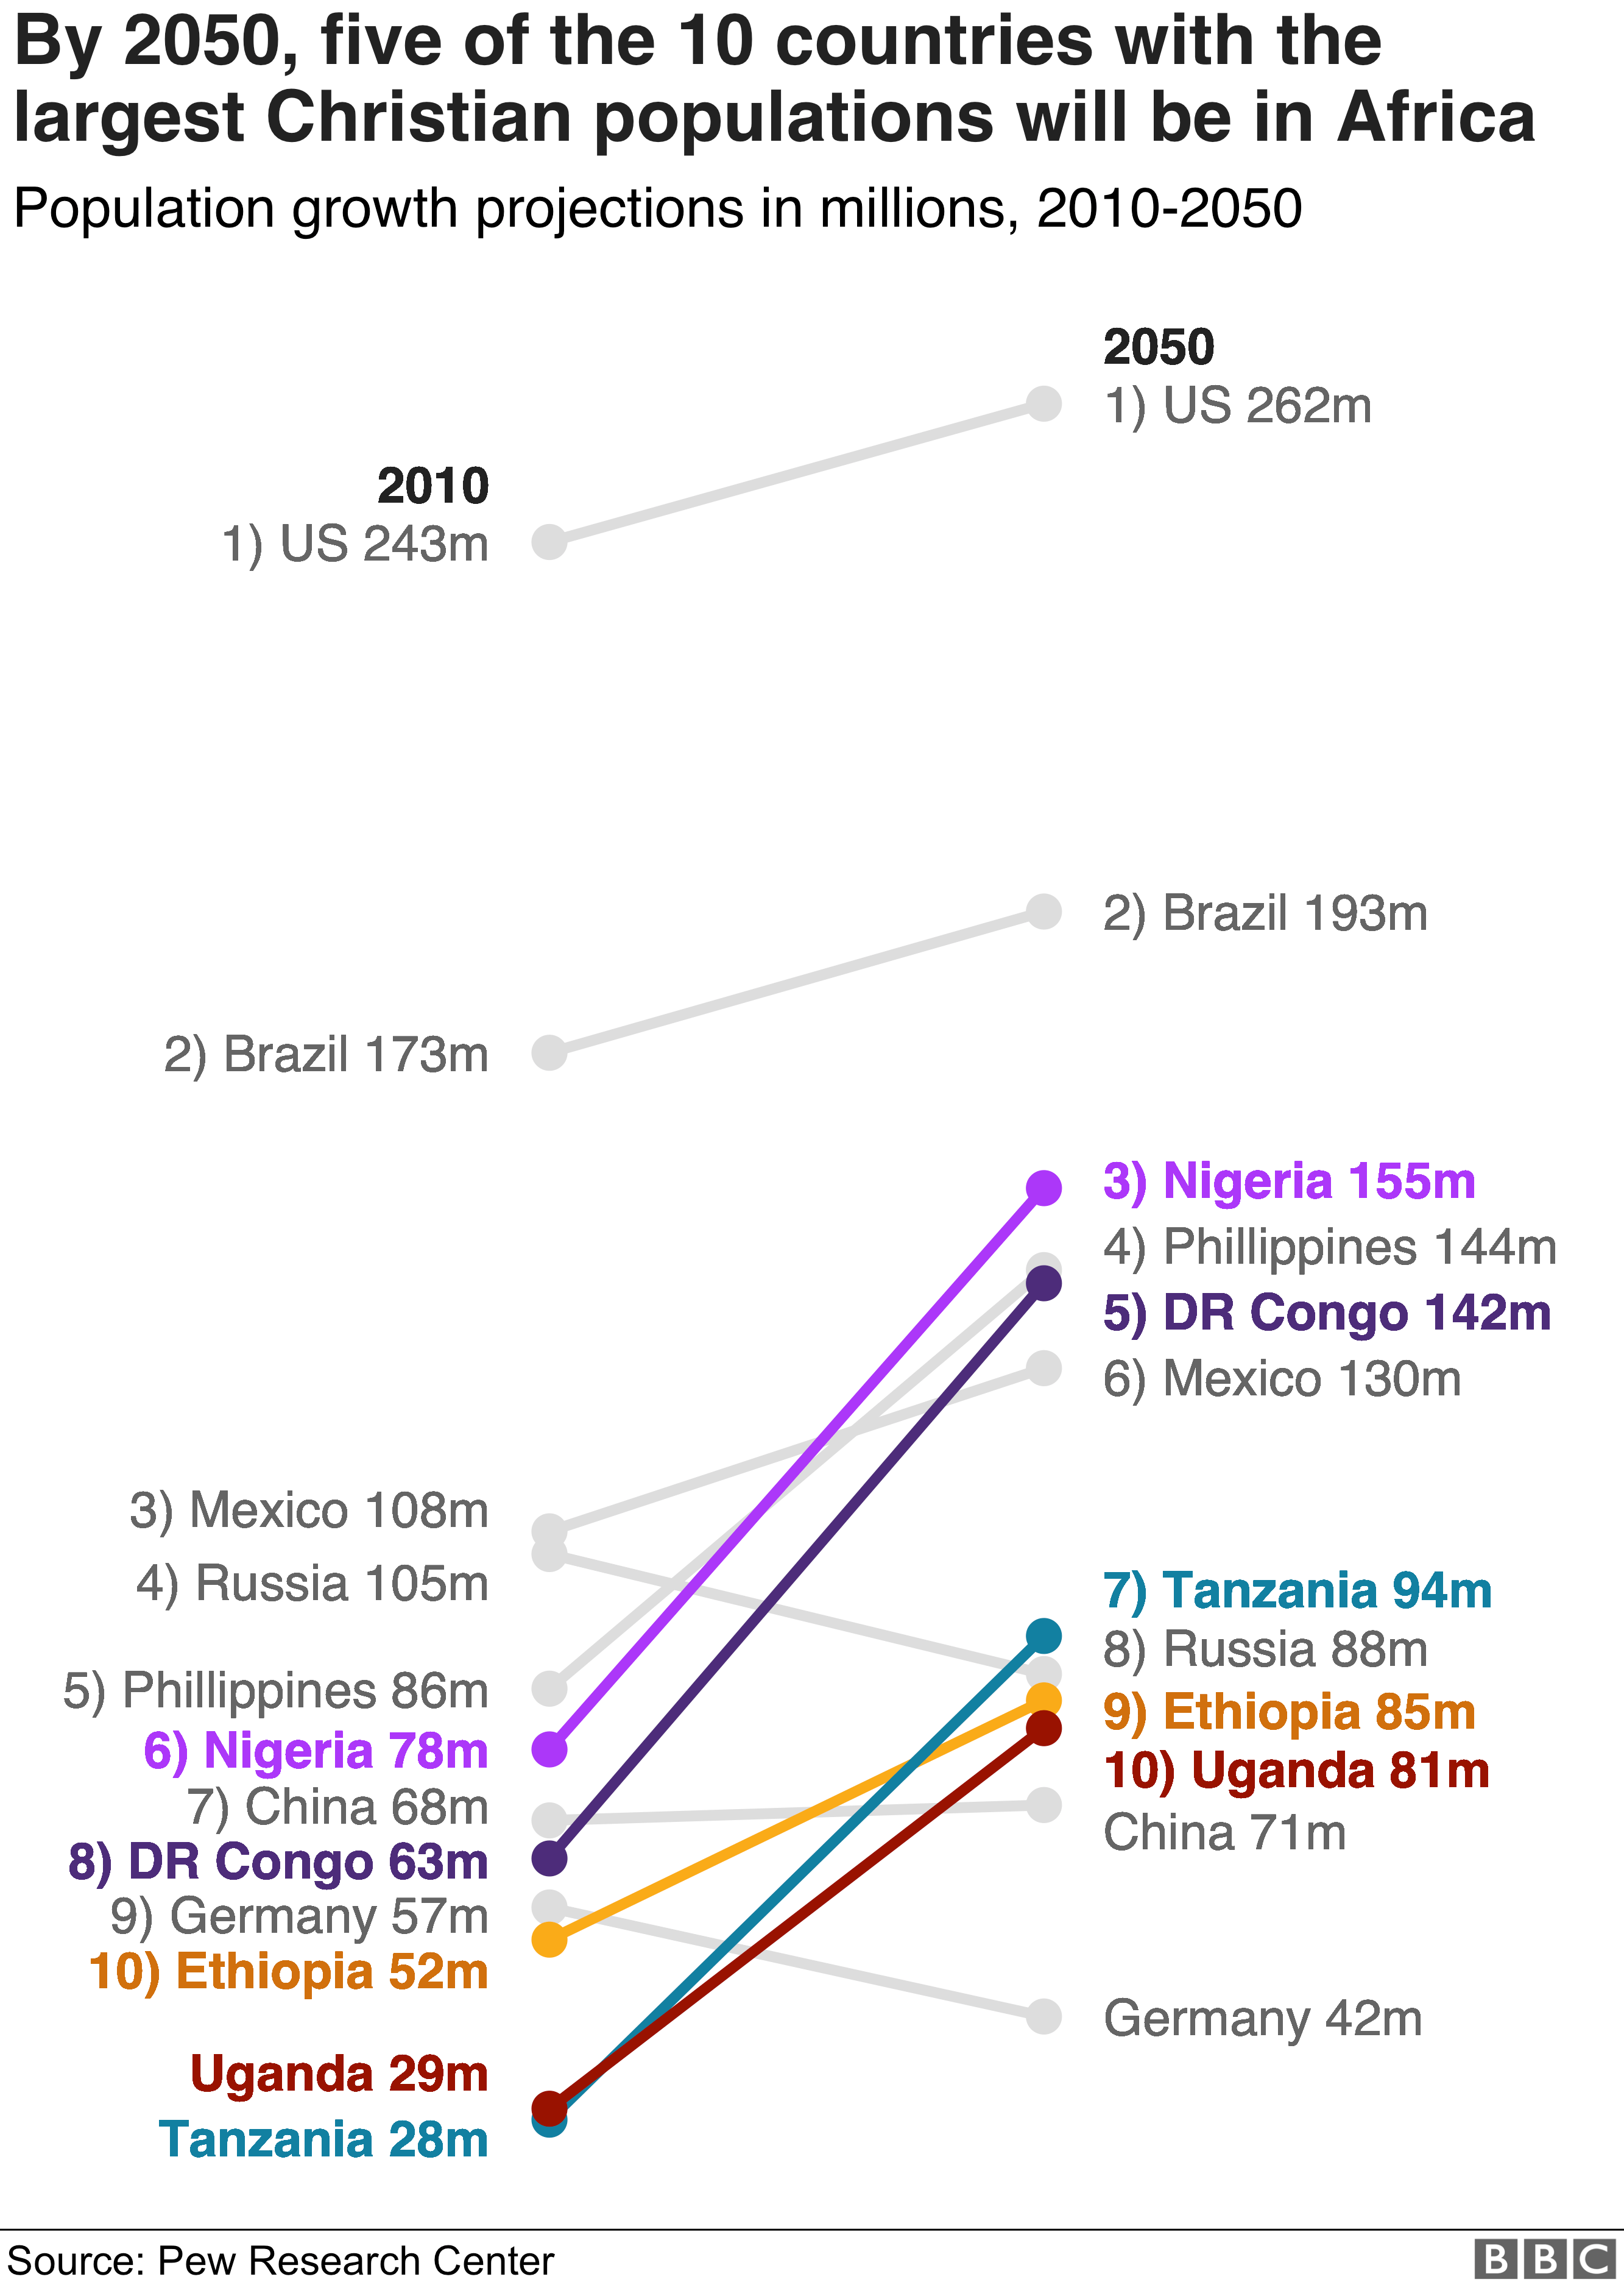 Chart showing projected growth of Catholic populations in different countries